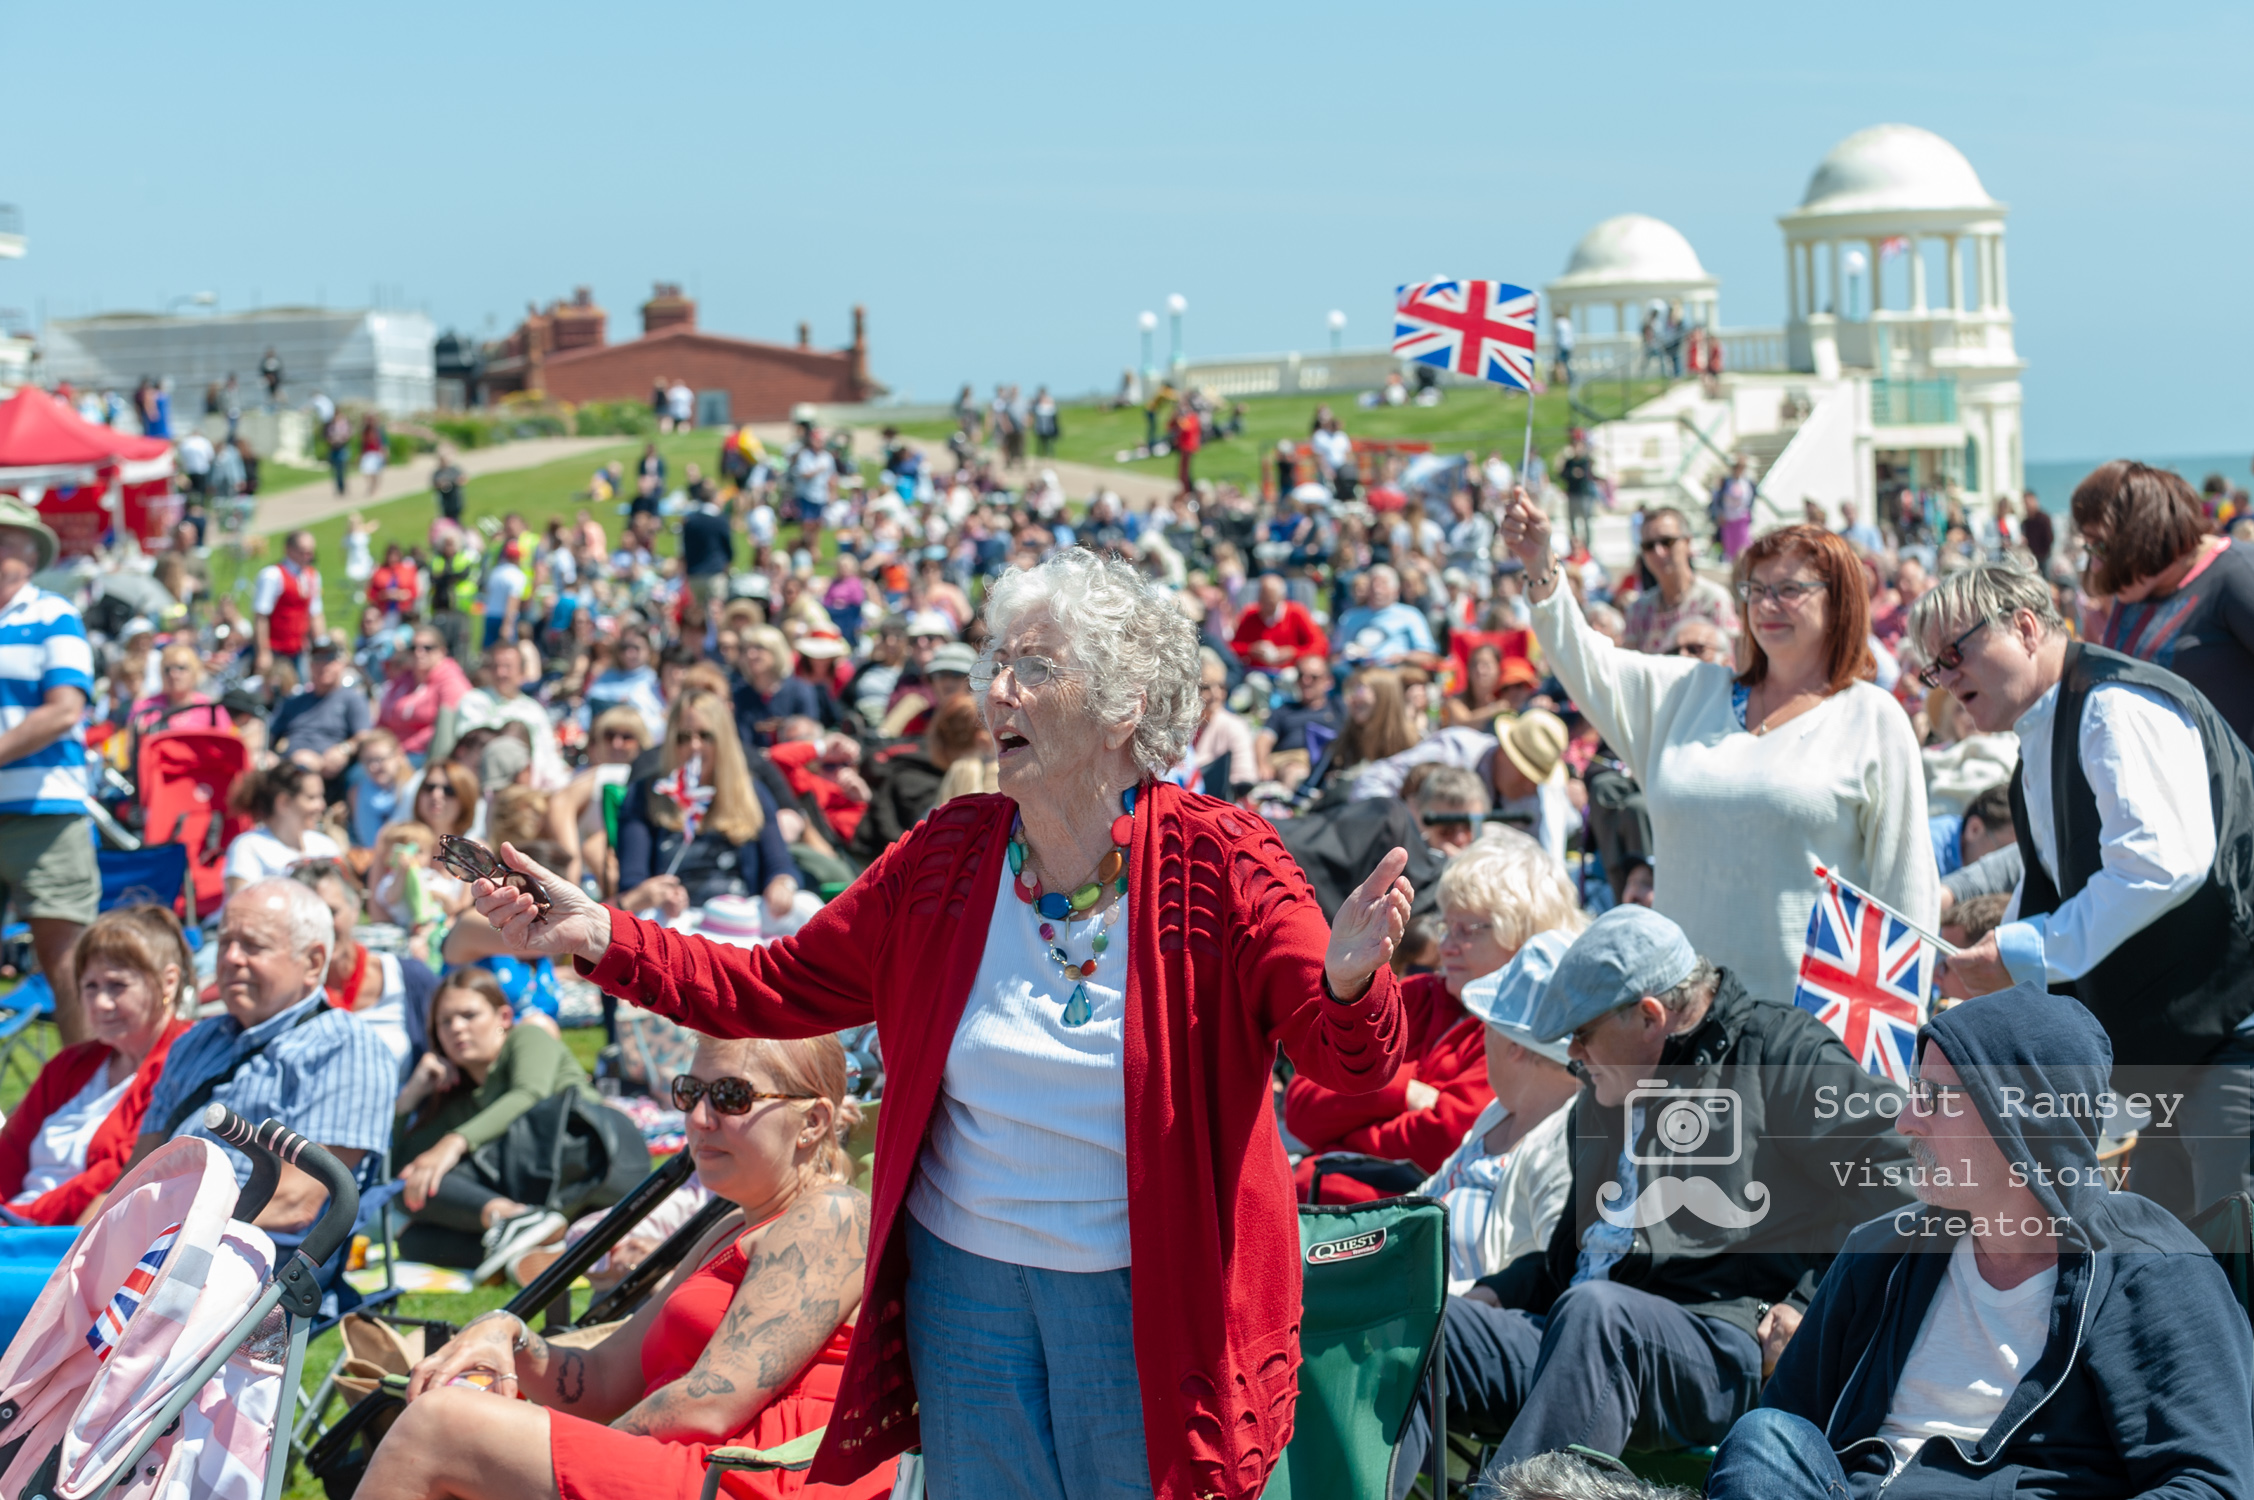 East-Sussex-Editorial-Photographer-Bexhill-Royal-Wedding-Celebrations-©-Scott-Ramsey-www.scottramsey.co.uk-010.jpg